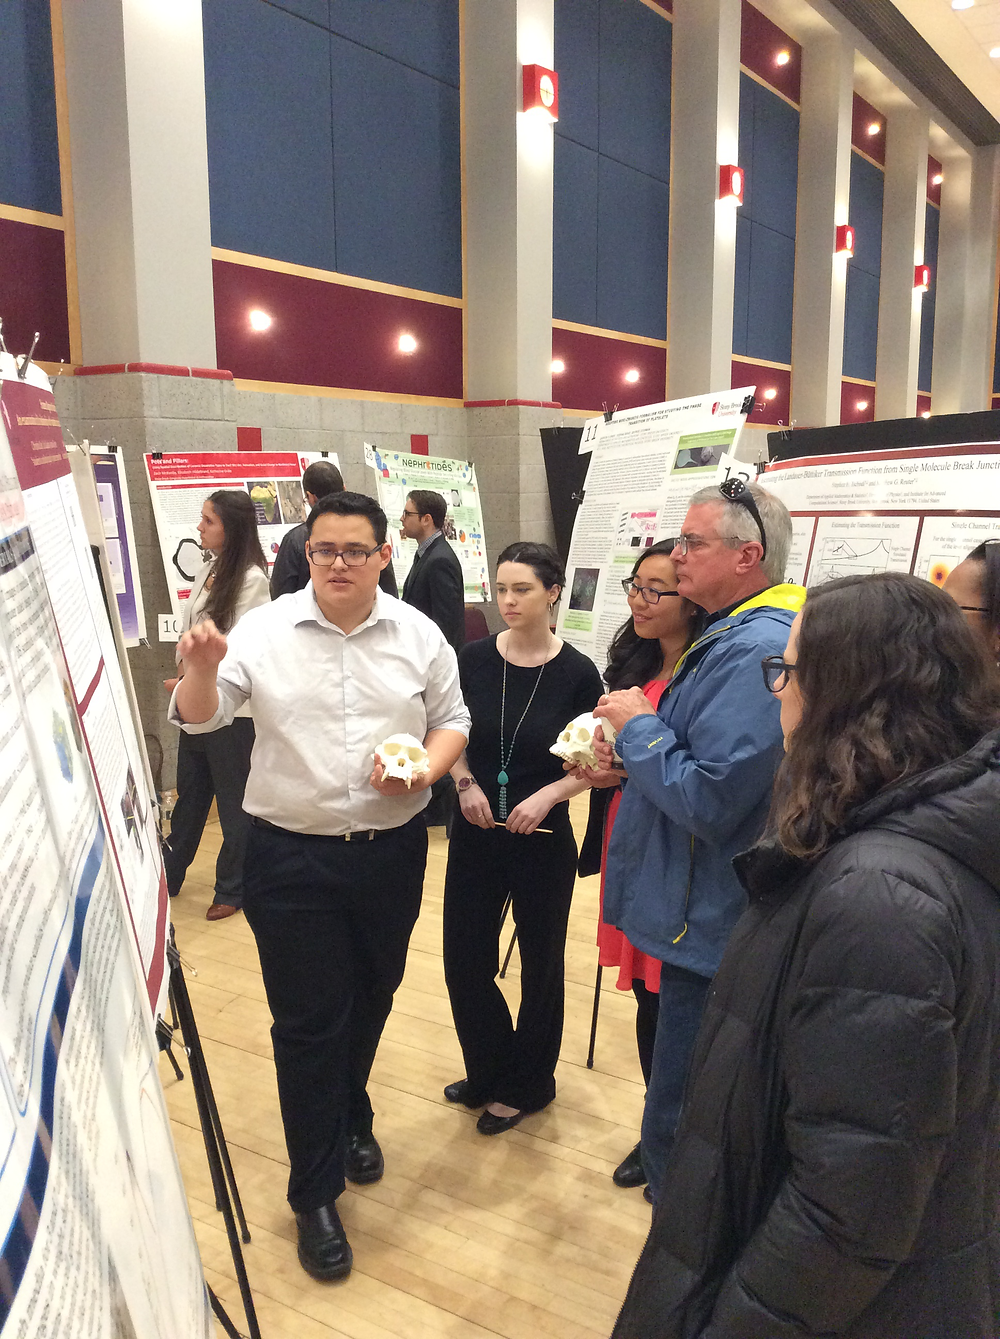 Jordan Guerra explains the project to Fred Grine (Anthropology Department chair).